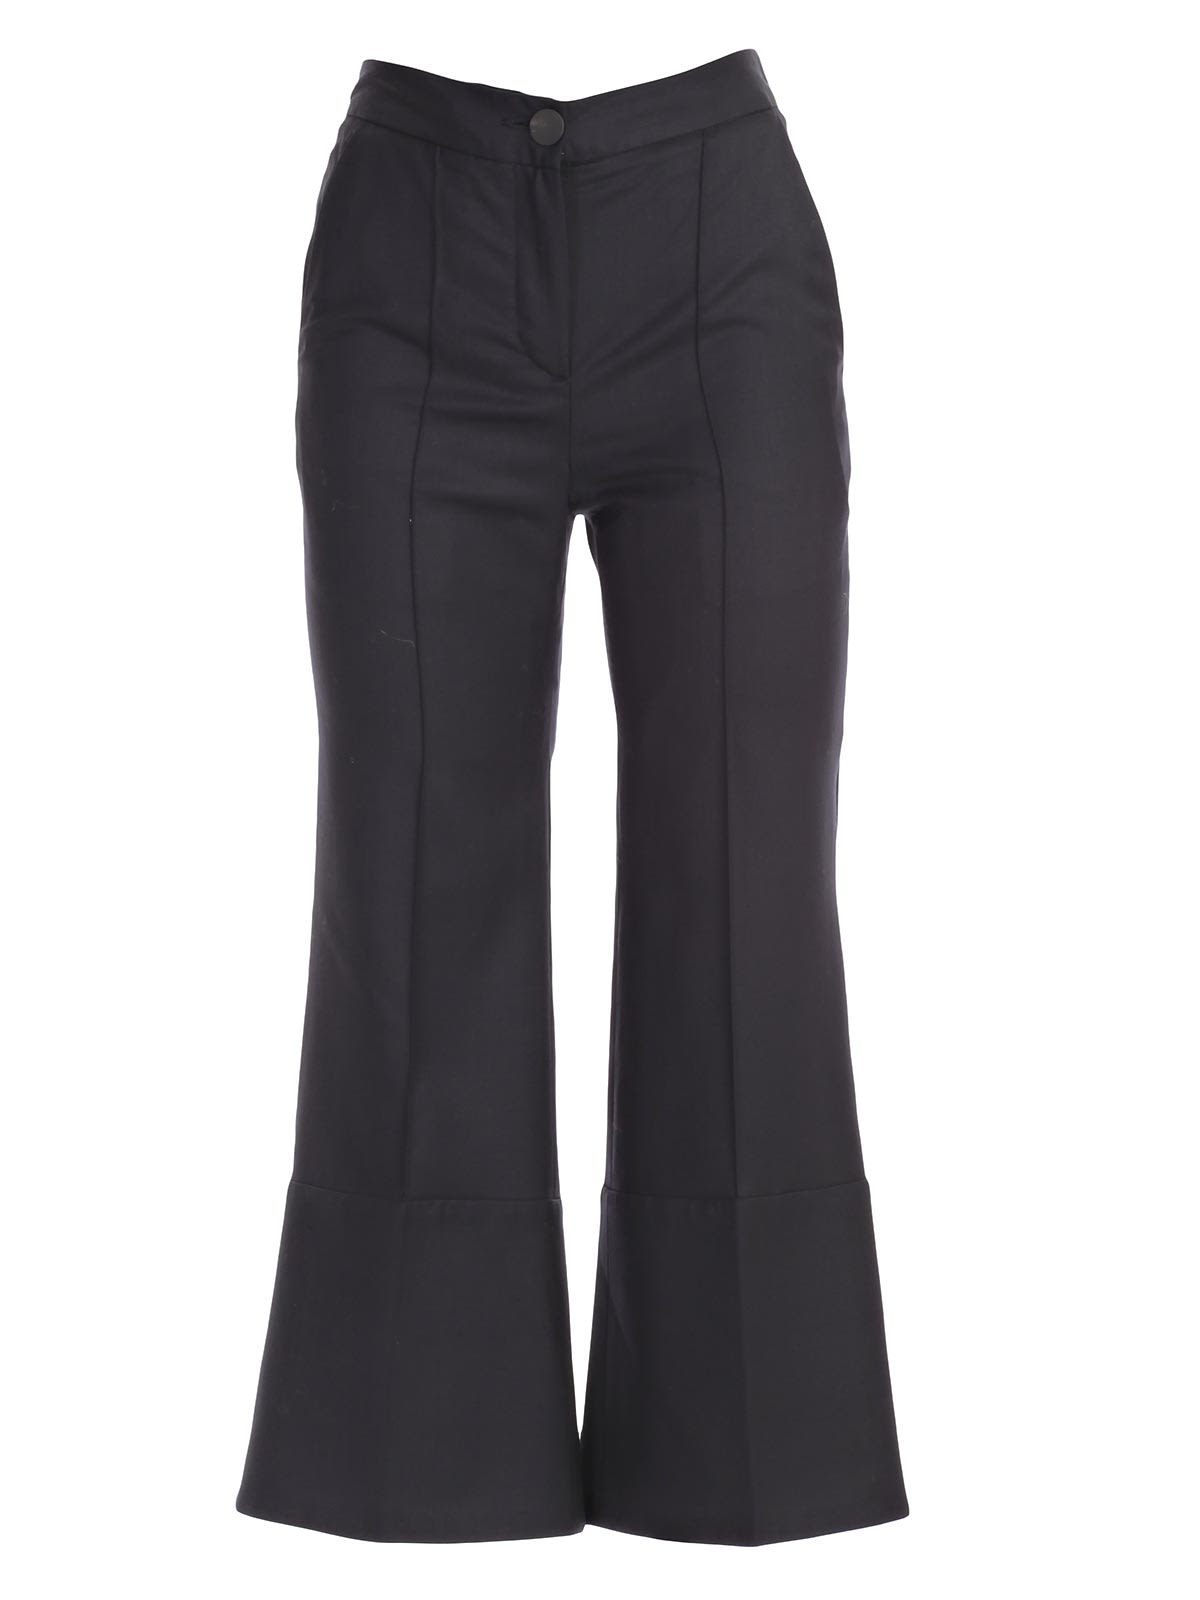 Eudon Choi Trousers